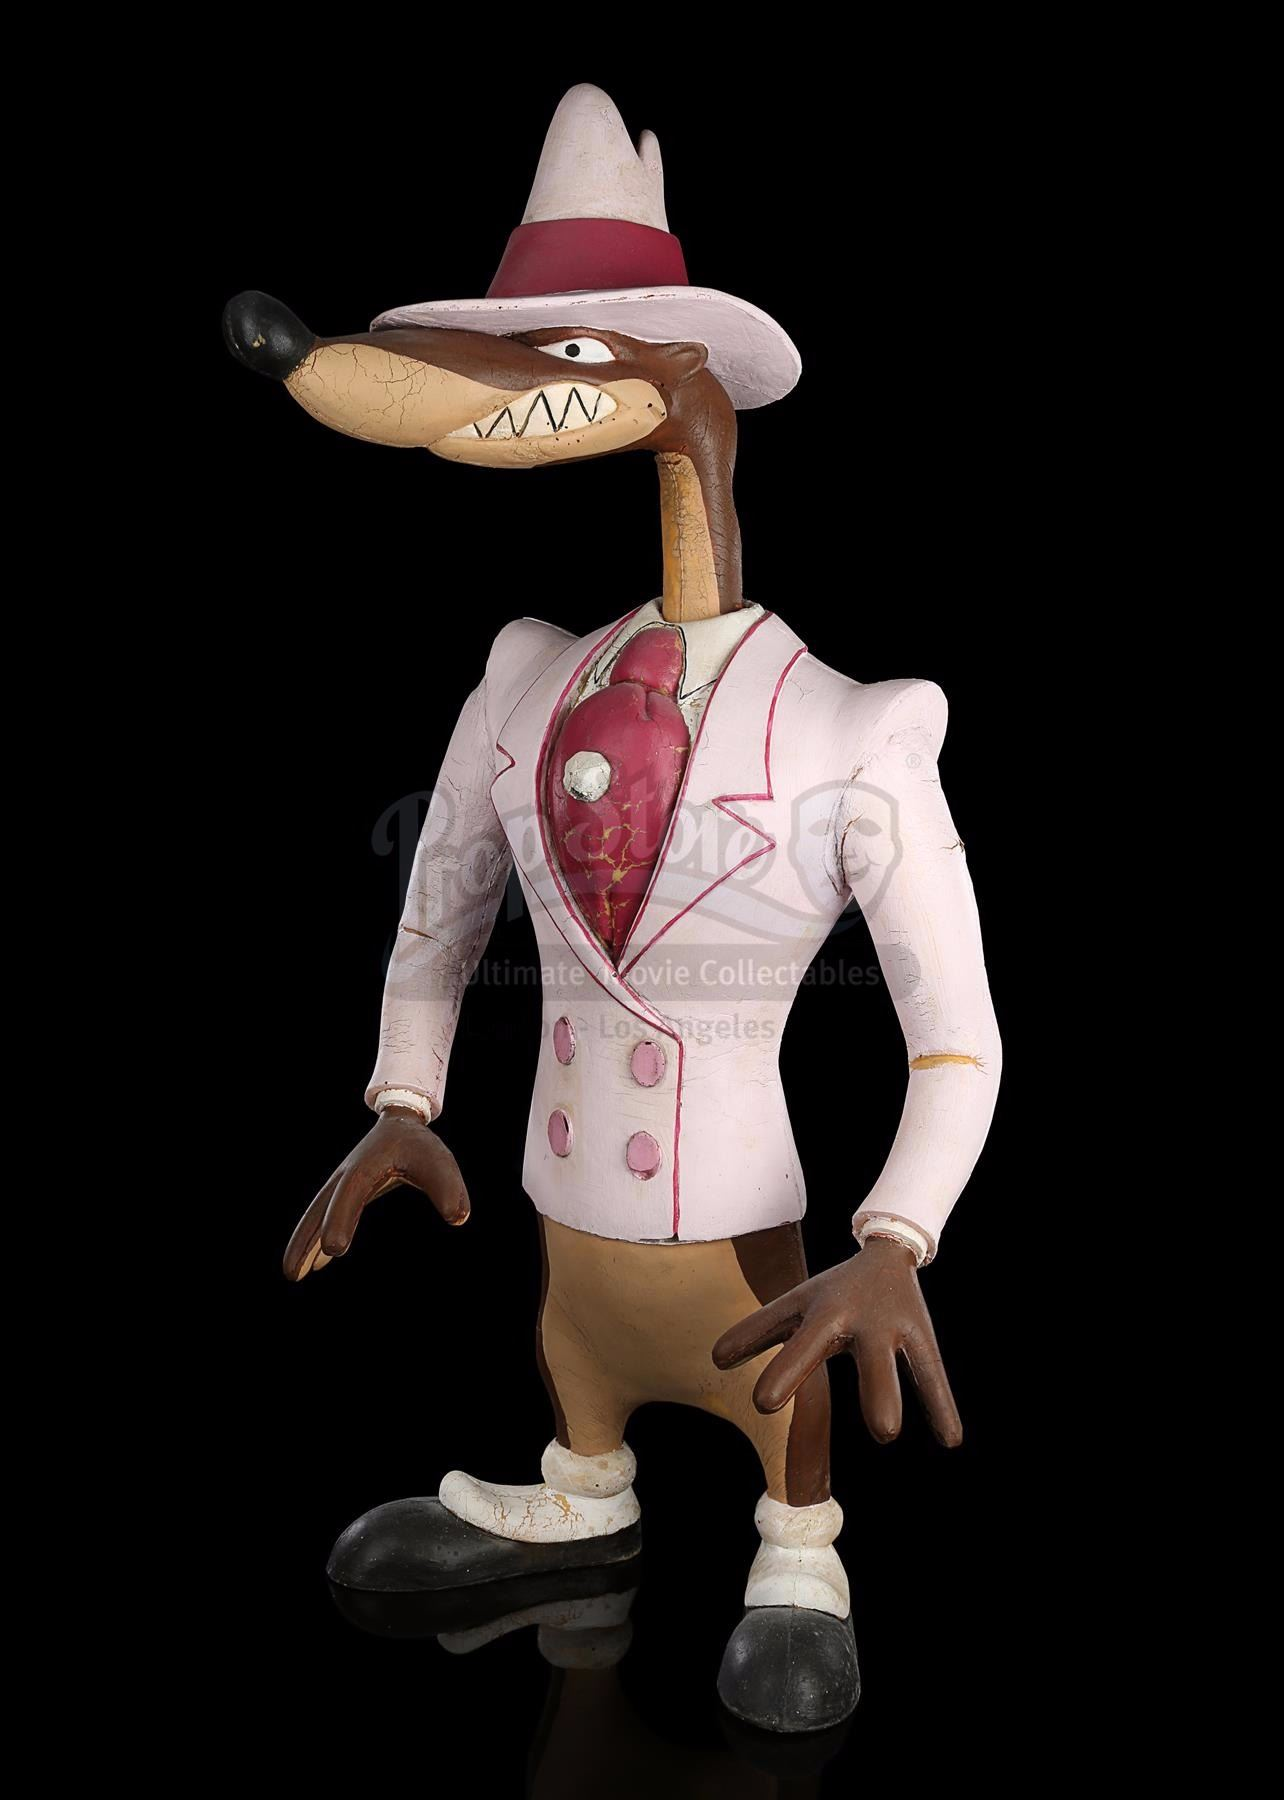 WHO FRAMED ROGER RABBIT (1988) - Full-Scale Smart Ass Weasel Stand-In